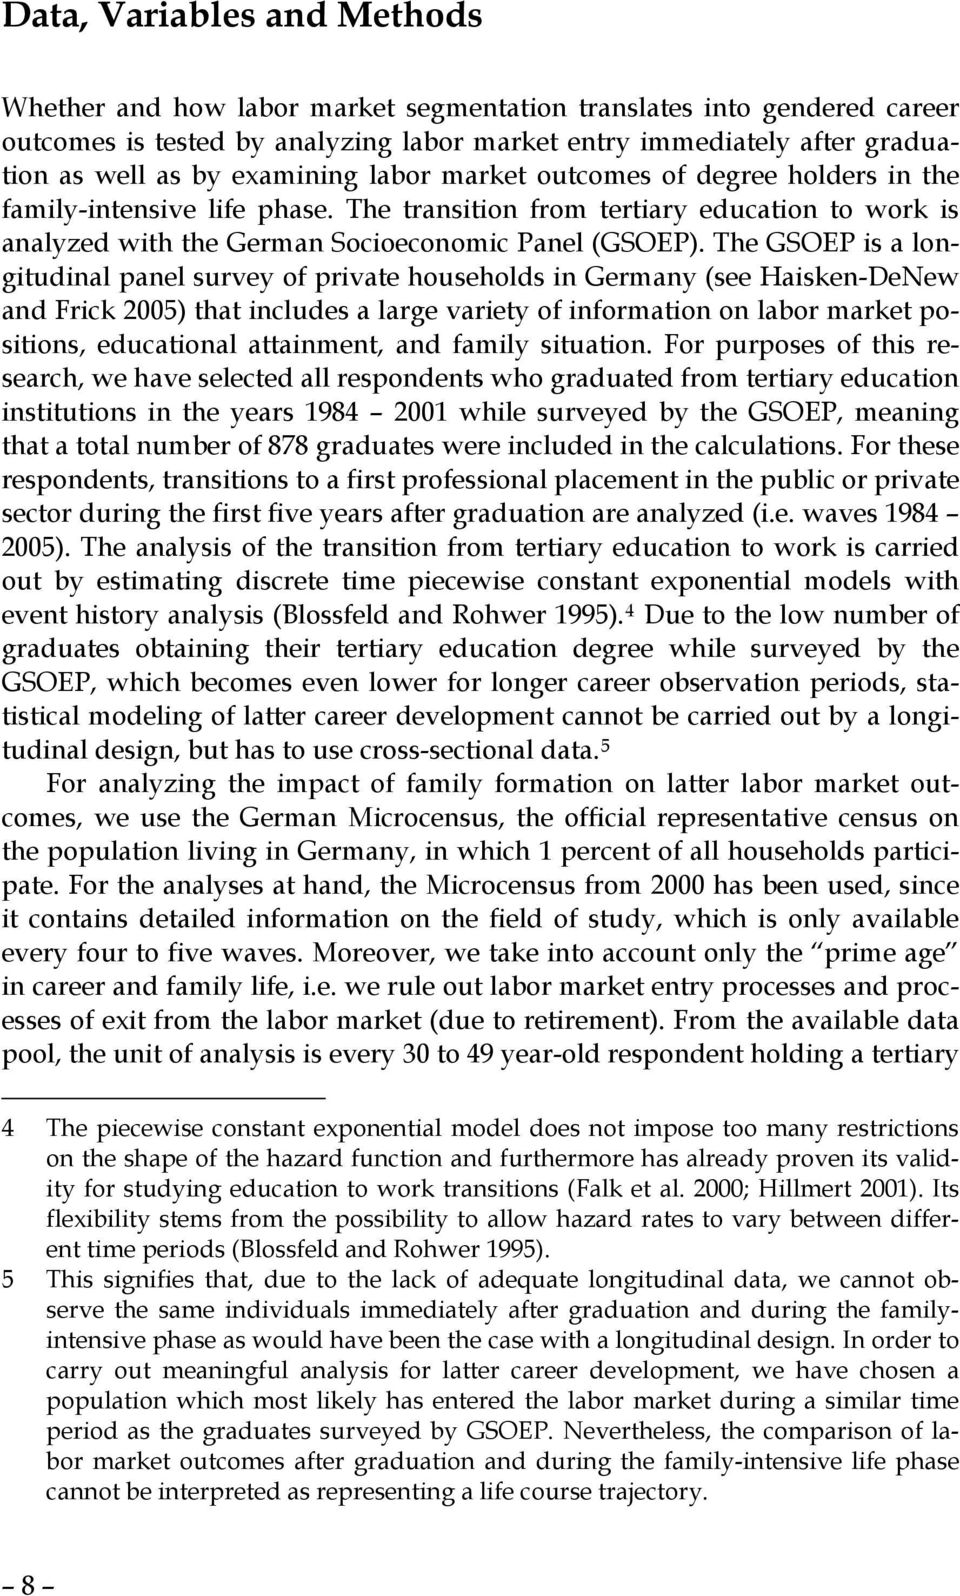 The GSOEP is a longitudinal panel survey of private households in Germany (see Haisken-DeNew and Frick 2005) that includes a large variety of information on labor market positions, educational